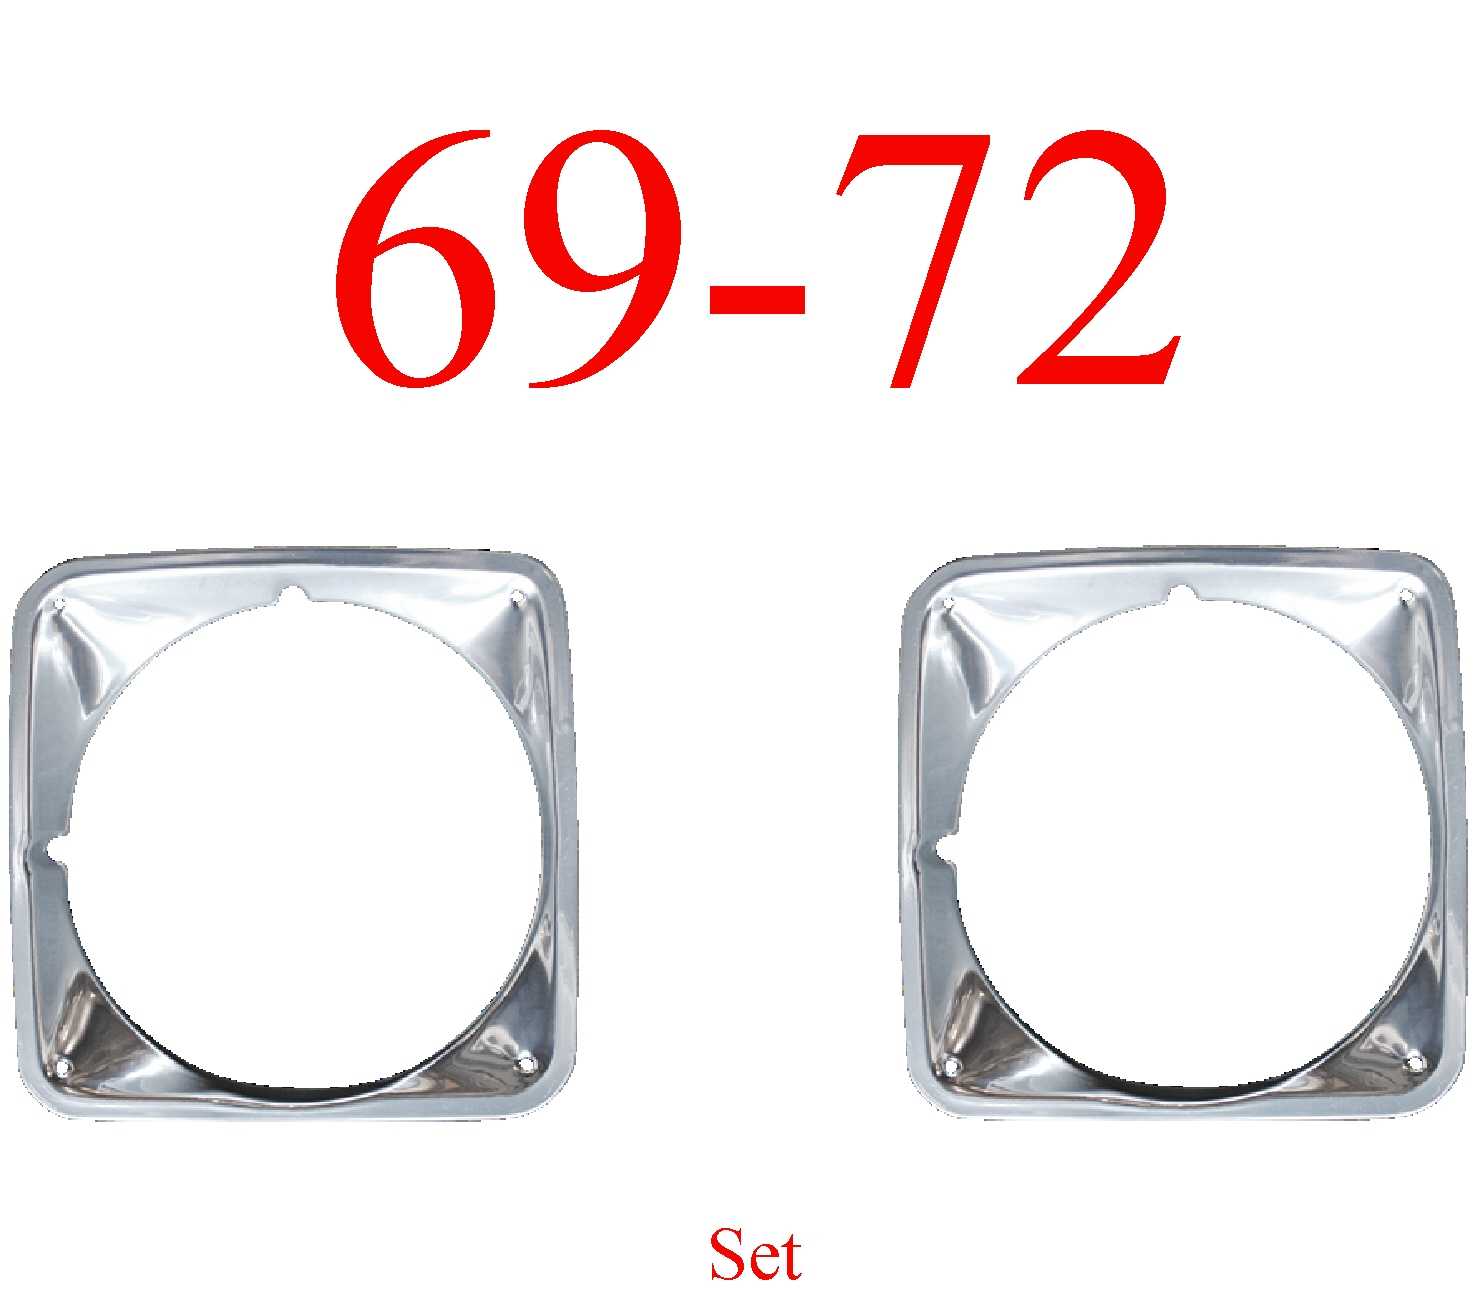 69-72 Chevy Truck Head Light Door Set, Chrome